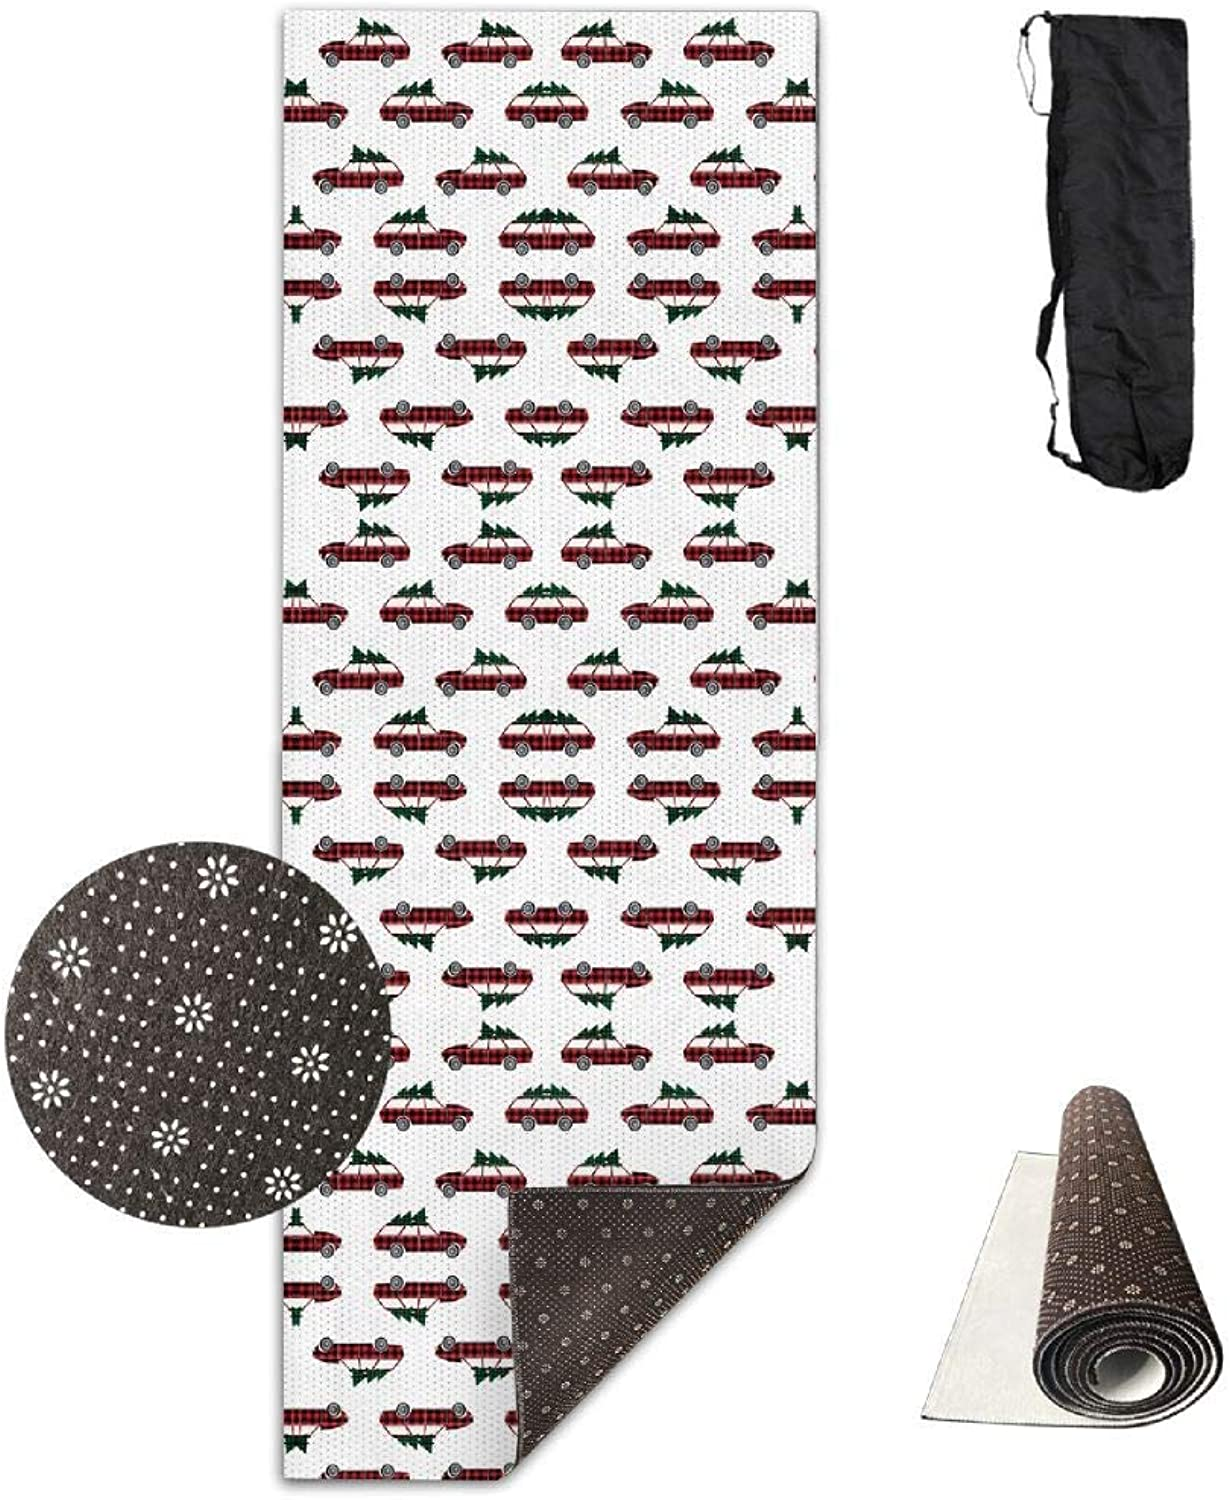 70Inch Long 28Inch Wide Comfort Velvet Yoga Mat, Christmas Wagon Christmas Red and Green Plaid Fabr Mat Carrying Strap & Bag